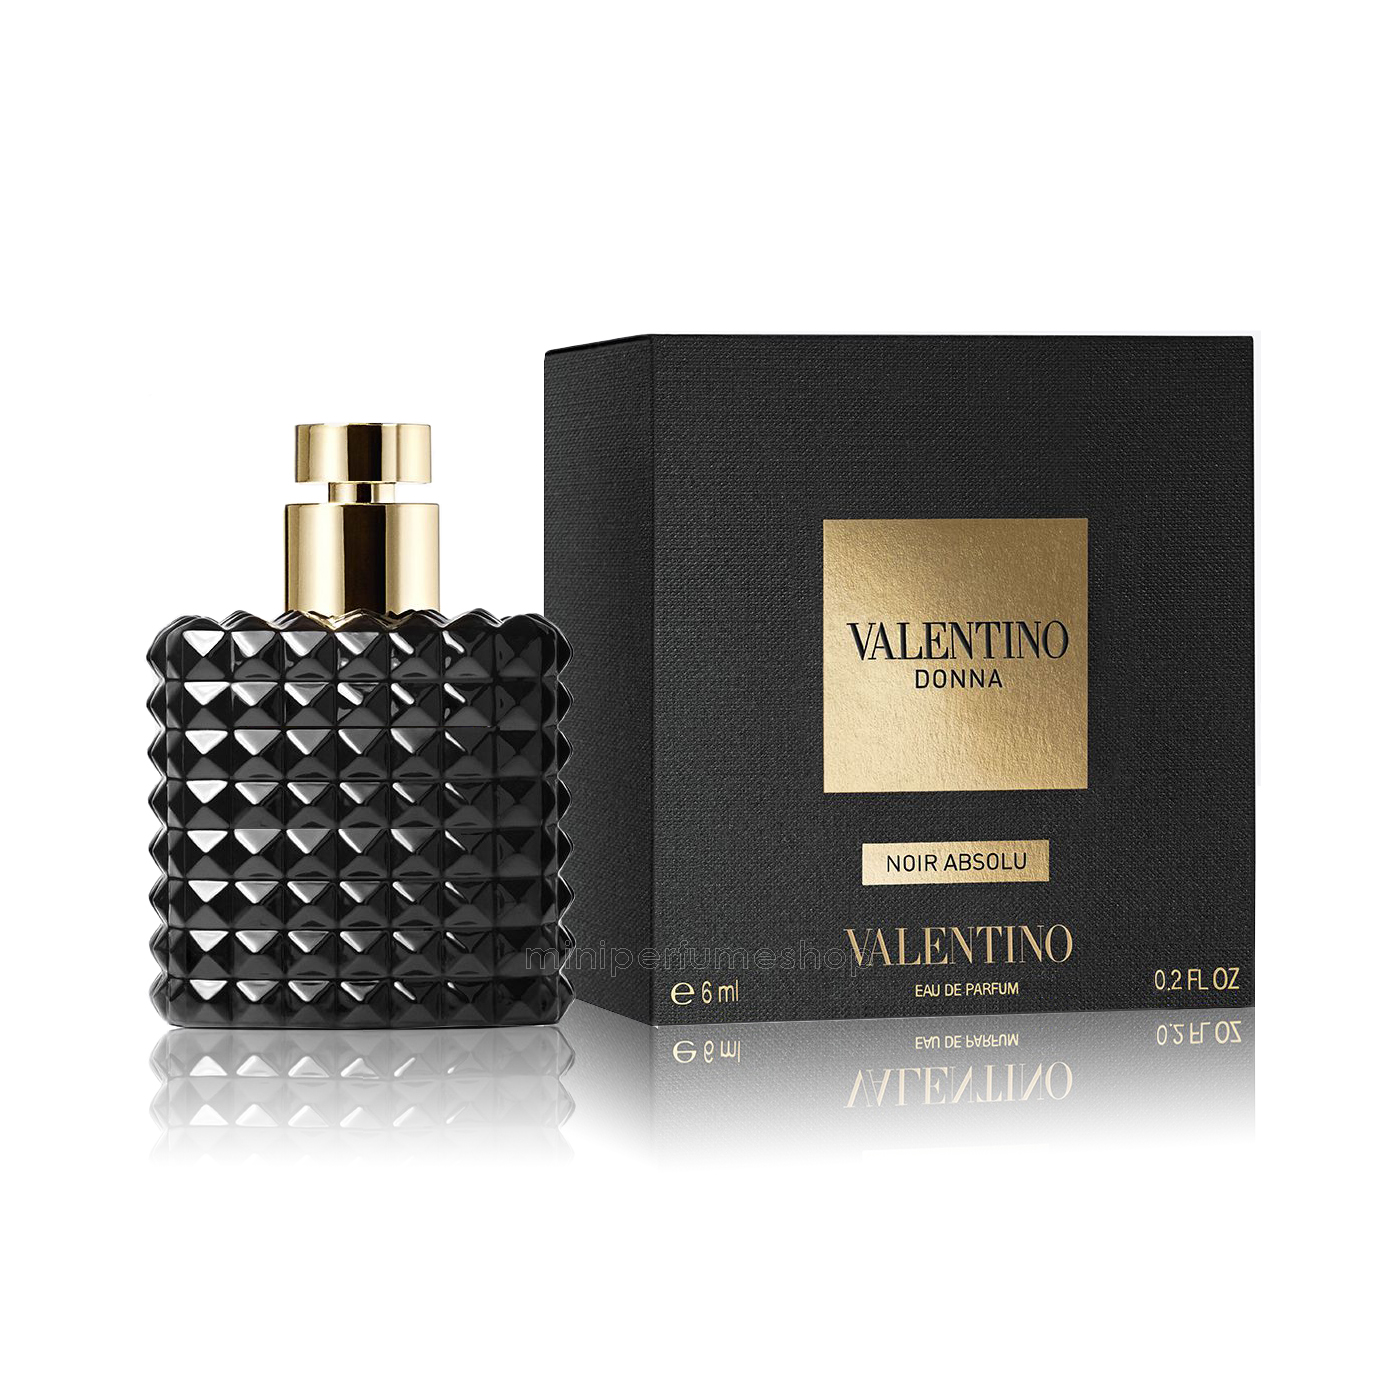 Mini perfume Valentino donna noir absolu- 6 ml. |  miniaturasperfume.comminiaturasperfume.com